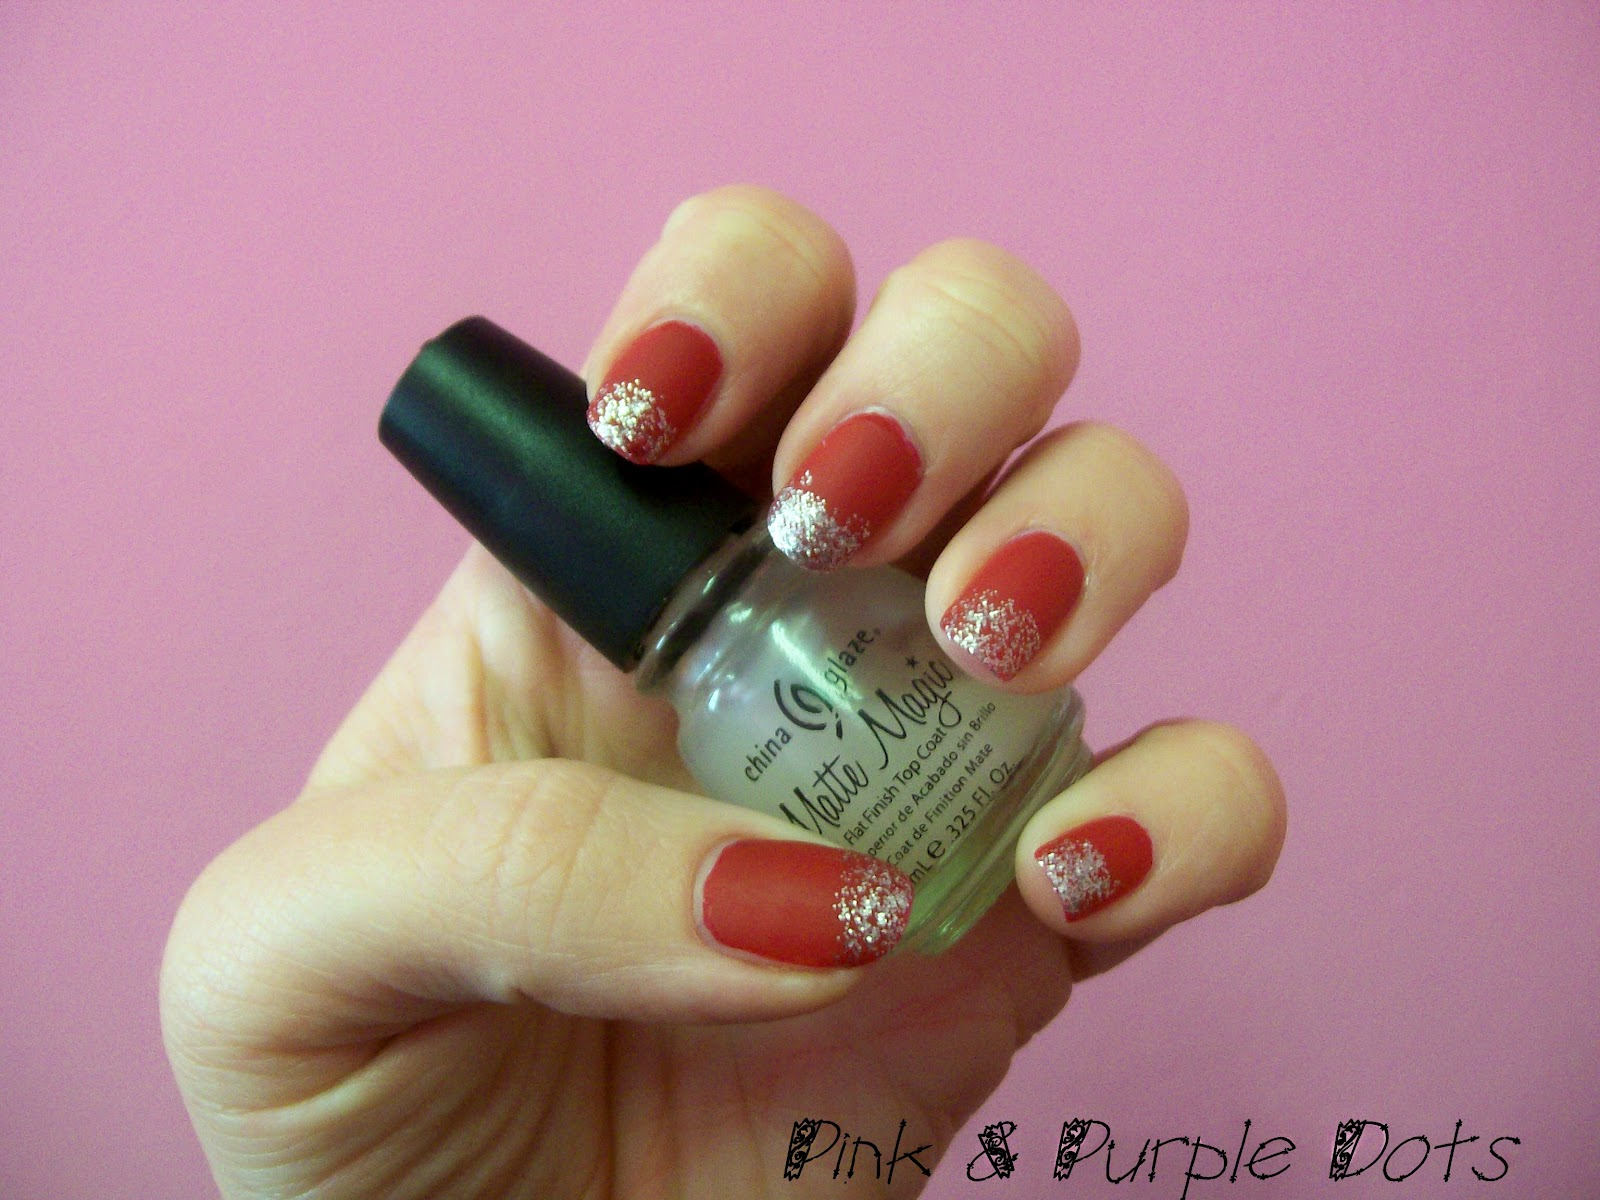 Pink & Purple Dots: Red with Silver Glitter Tips Matte